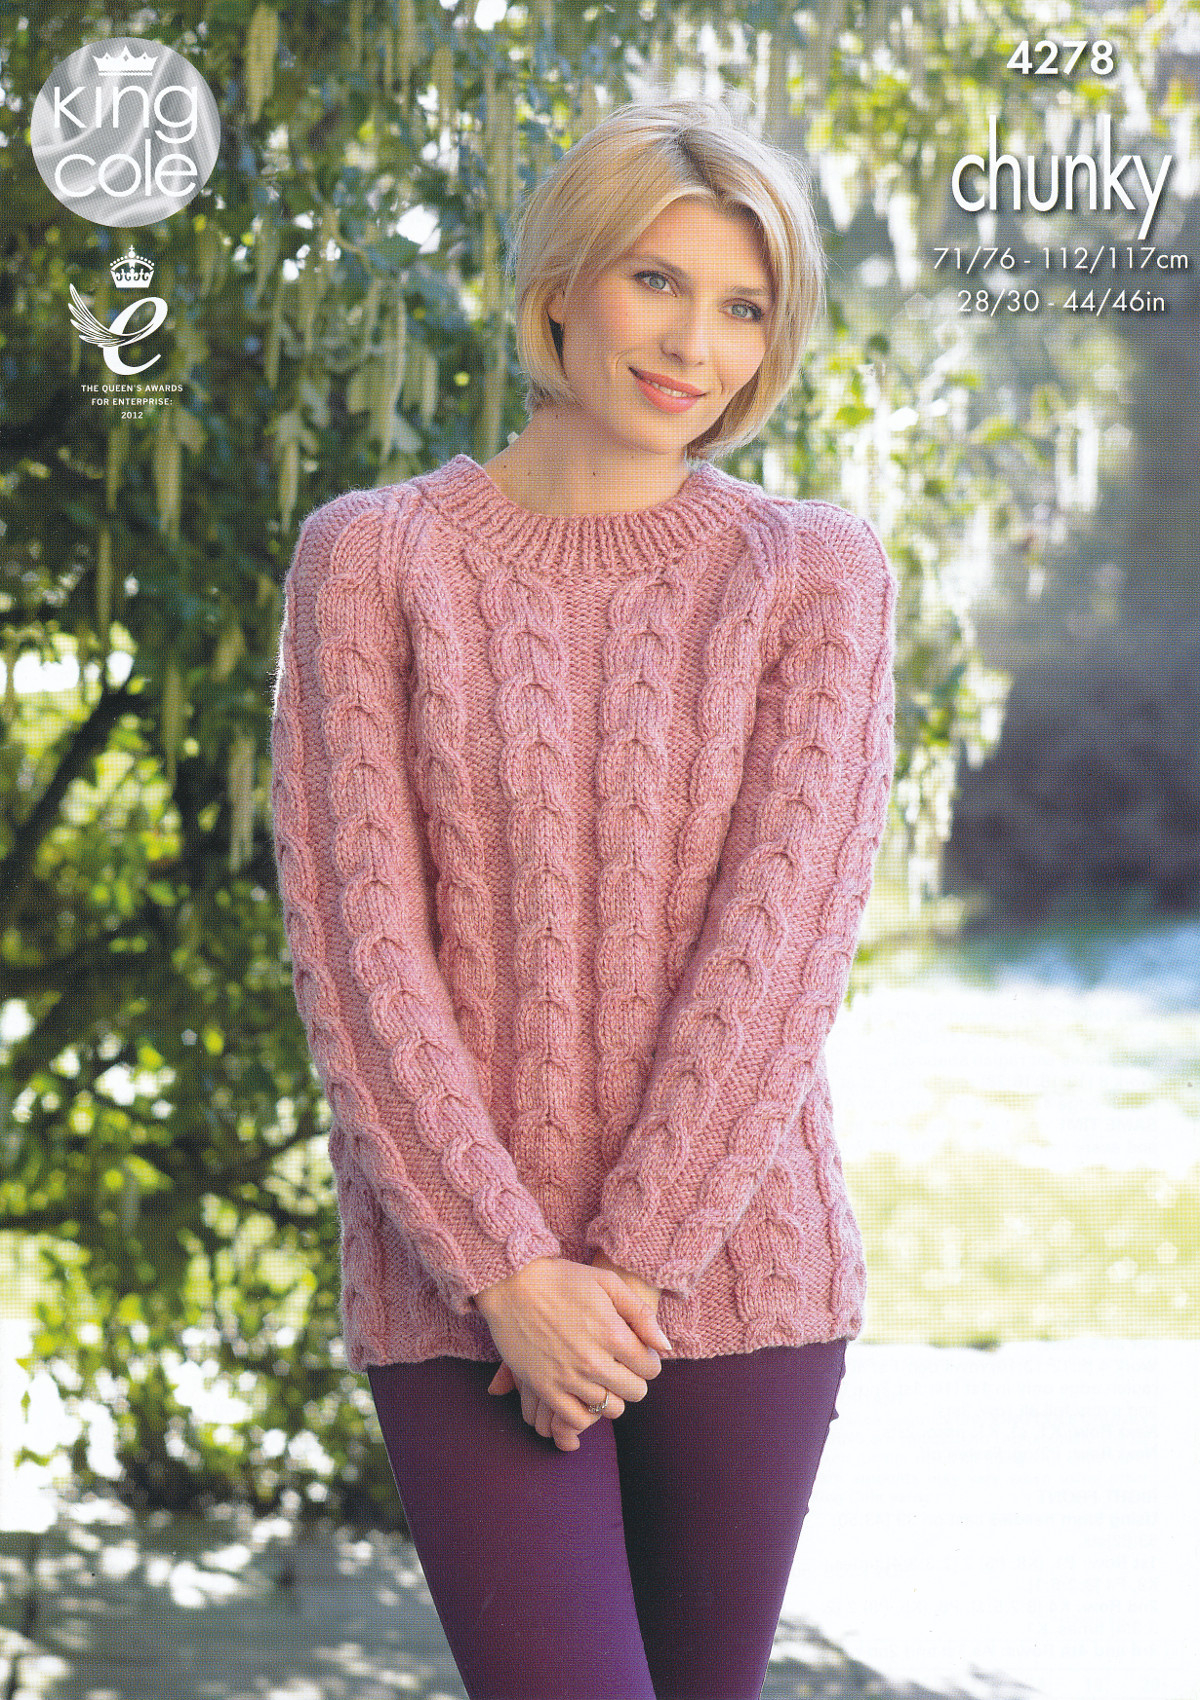 Cardigan Sweater Knitting Pattern Details About King Cole Womens Chunky Knitting Pattern Ladies Cable Knit Sweater Cardigan 4278